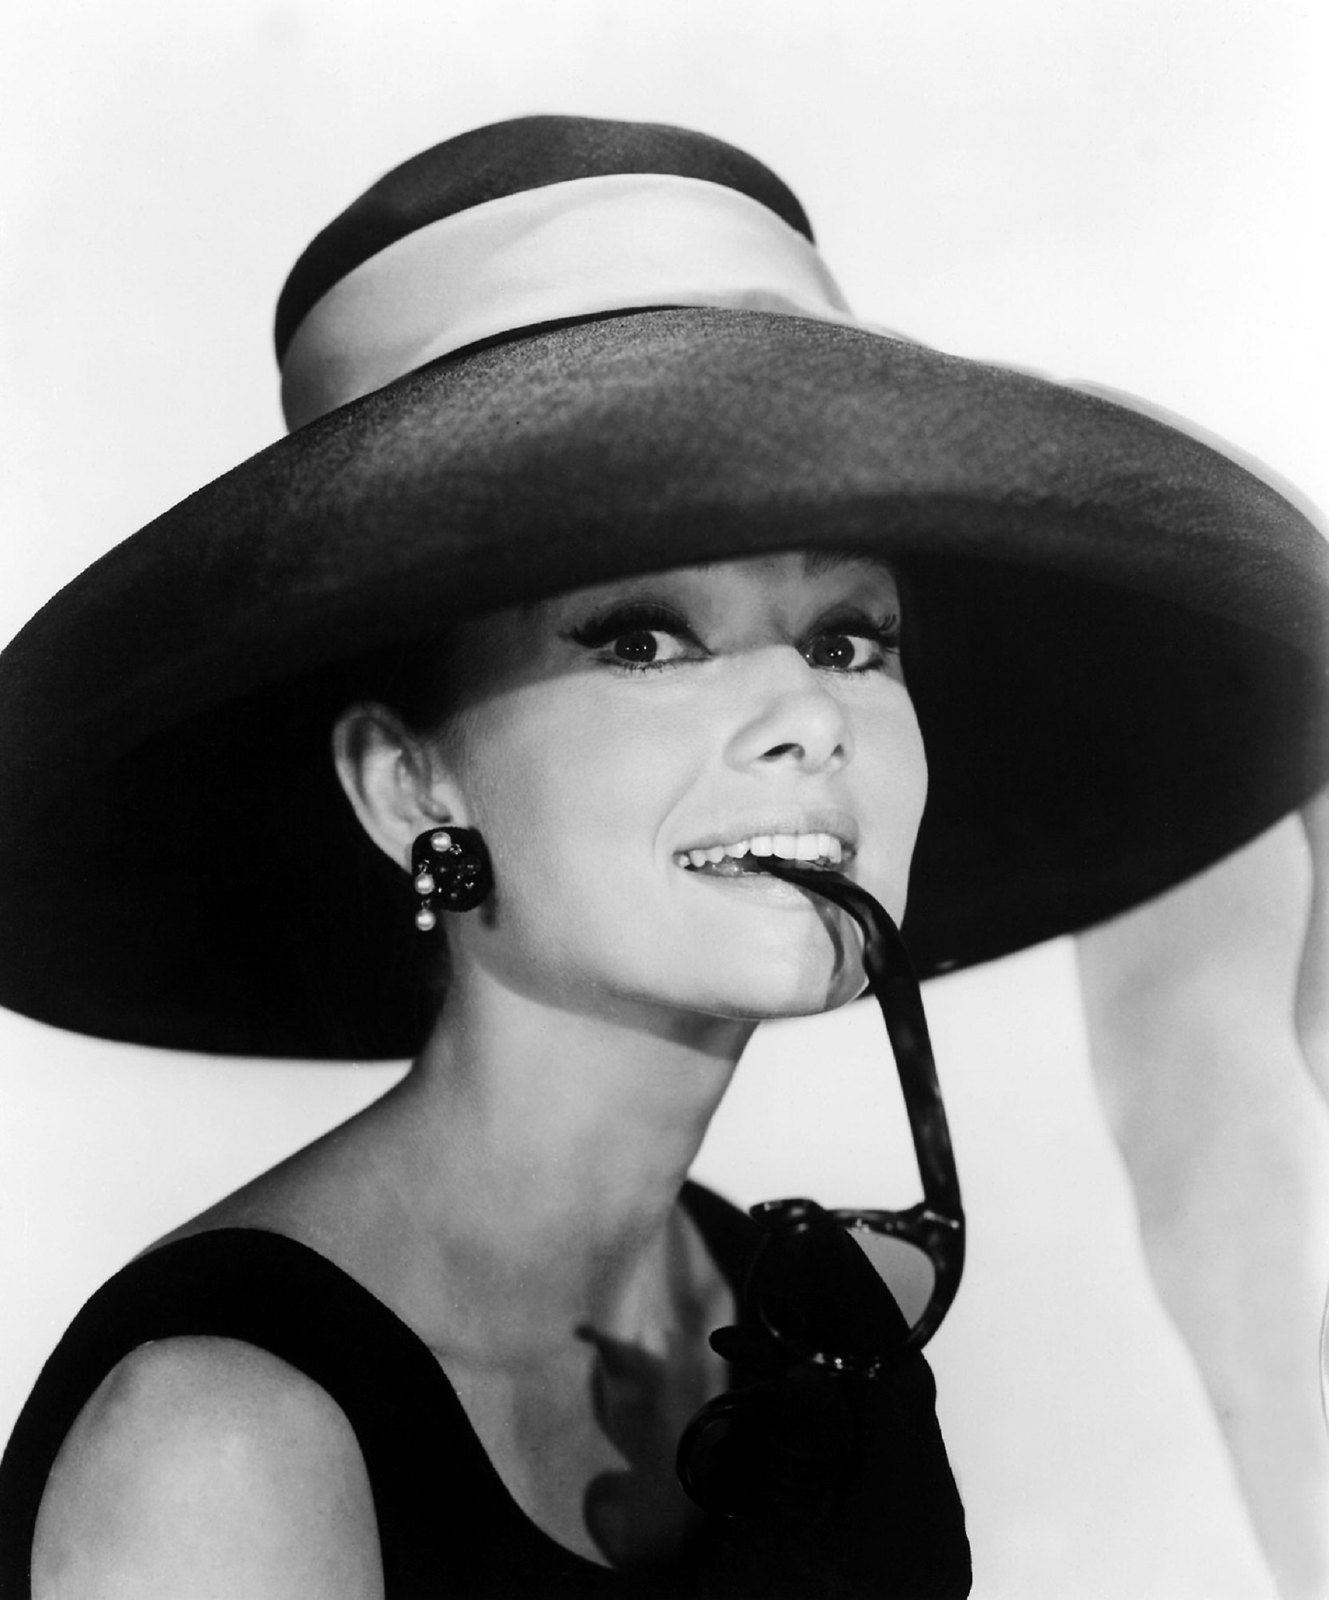 Audrey Hepburn, Breakfast at Tiffany's (1961)